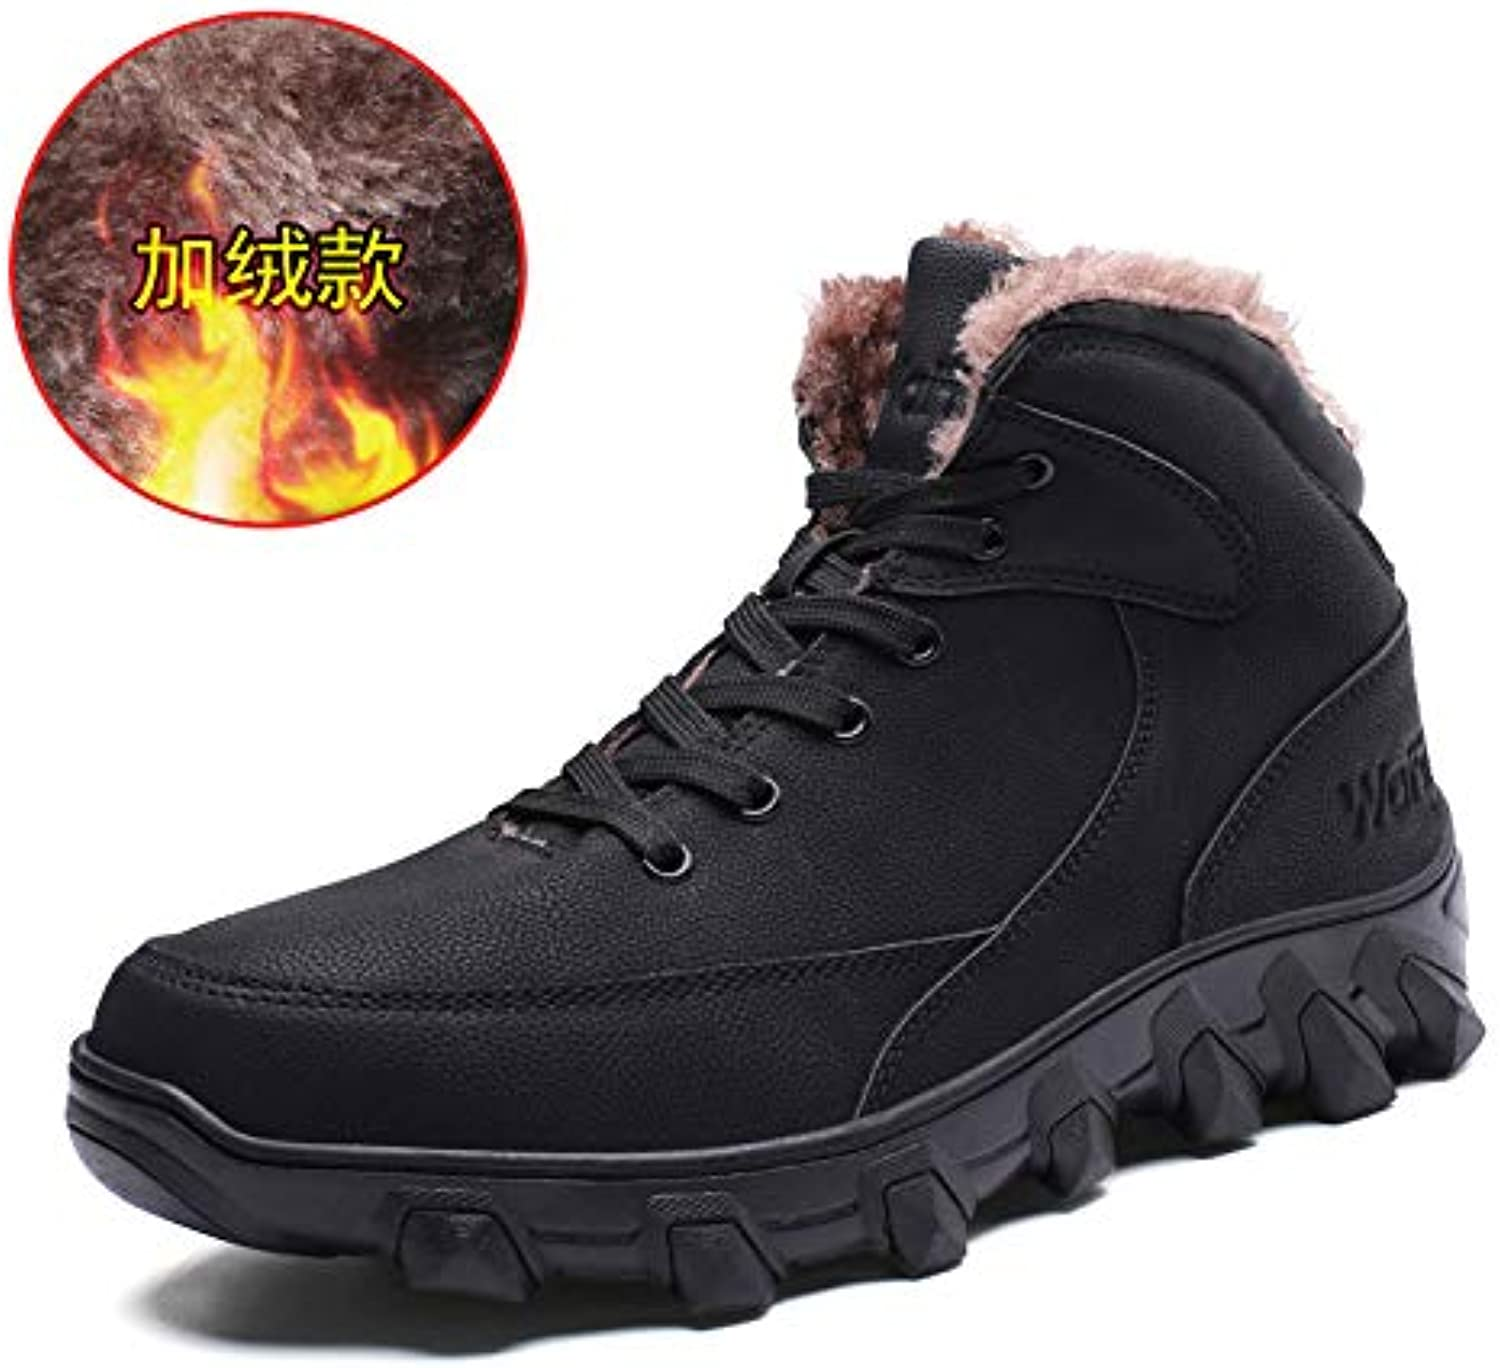 LOVDRAM Boots Men's Winter Martin Boots Men'S Thick Warm High Top Cotton shoes Men'S Thick Leather Anti Skiing Boots Factory Price